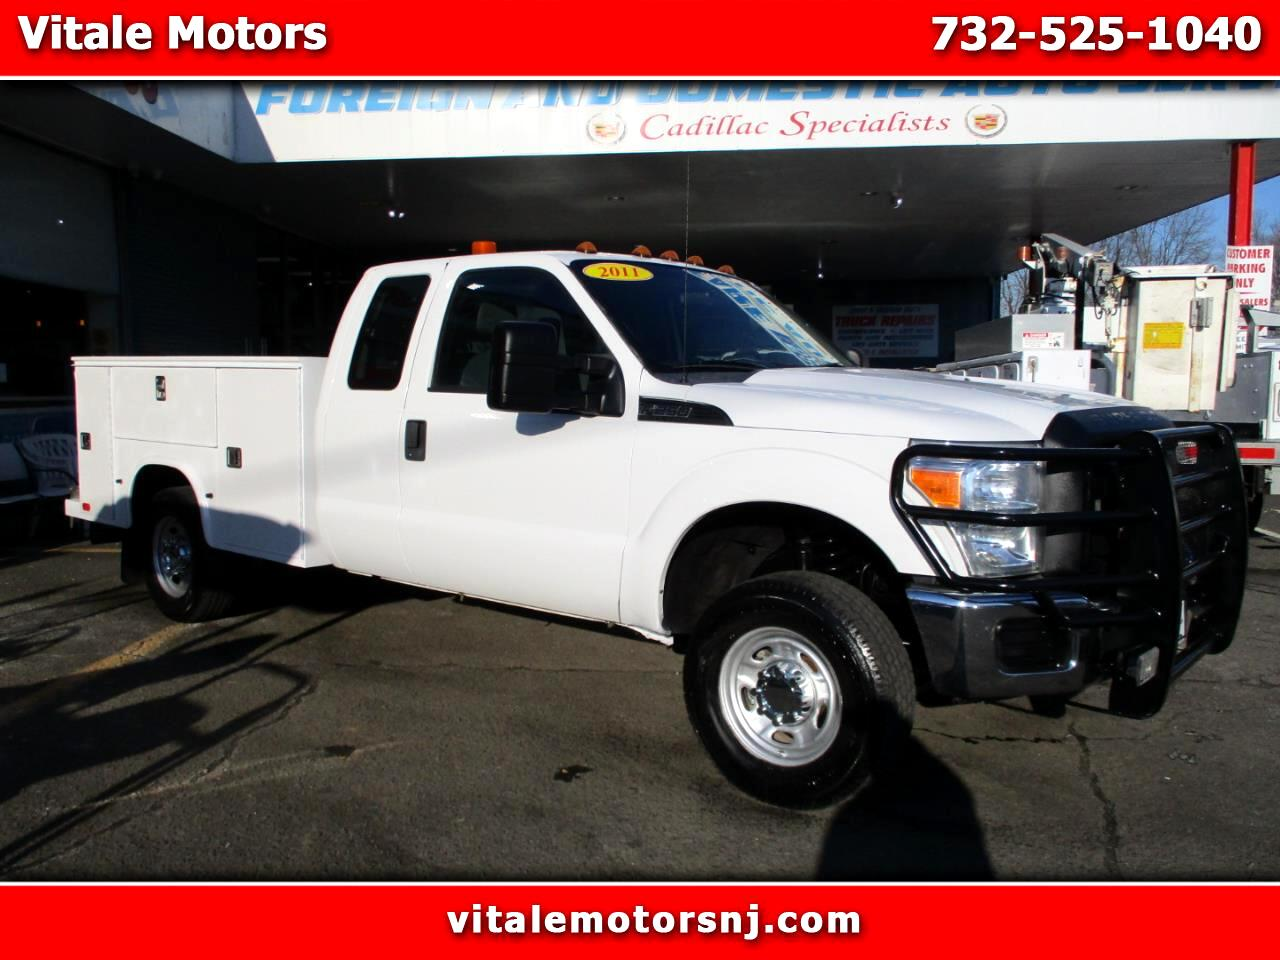 2011 Ford F-250 SD XL SUPER CAB UTILITY BODY 4X4